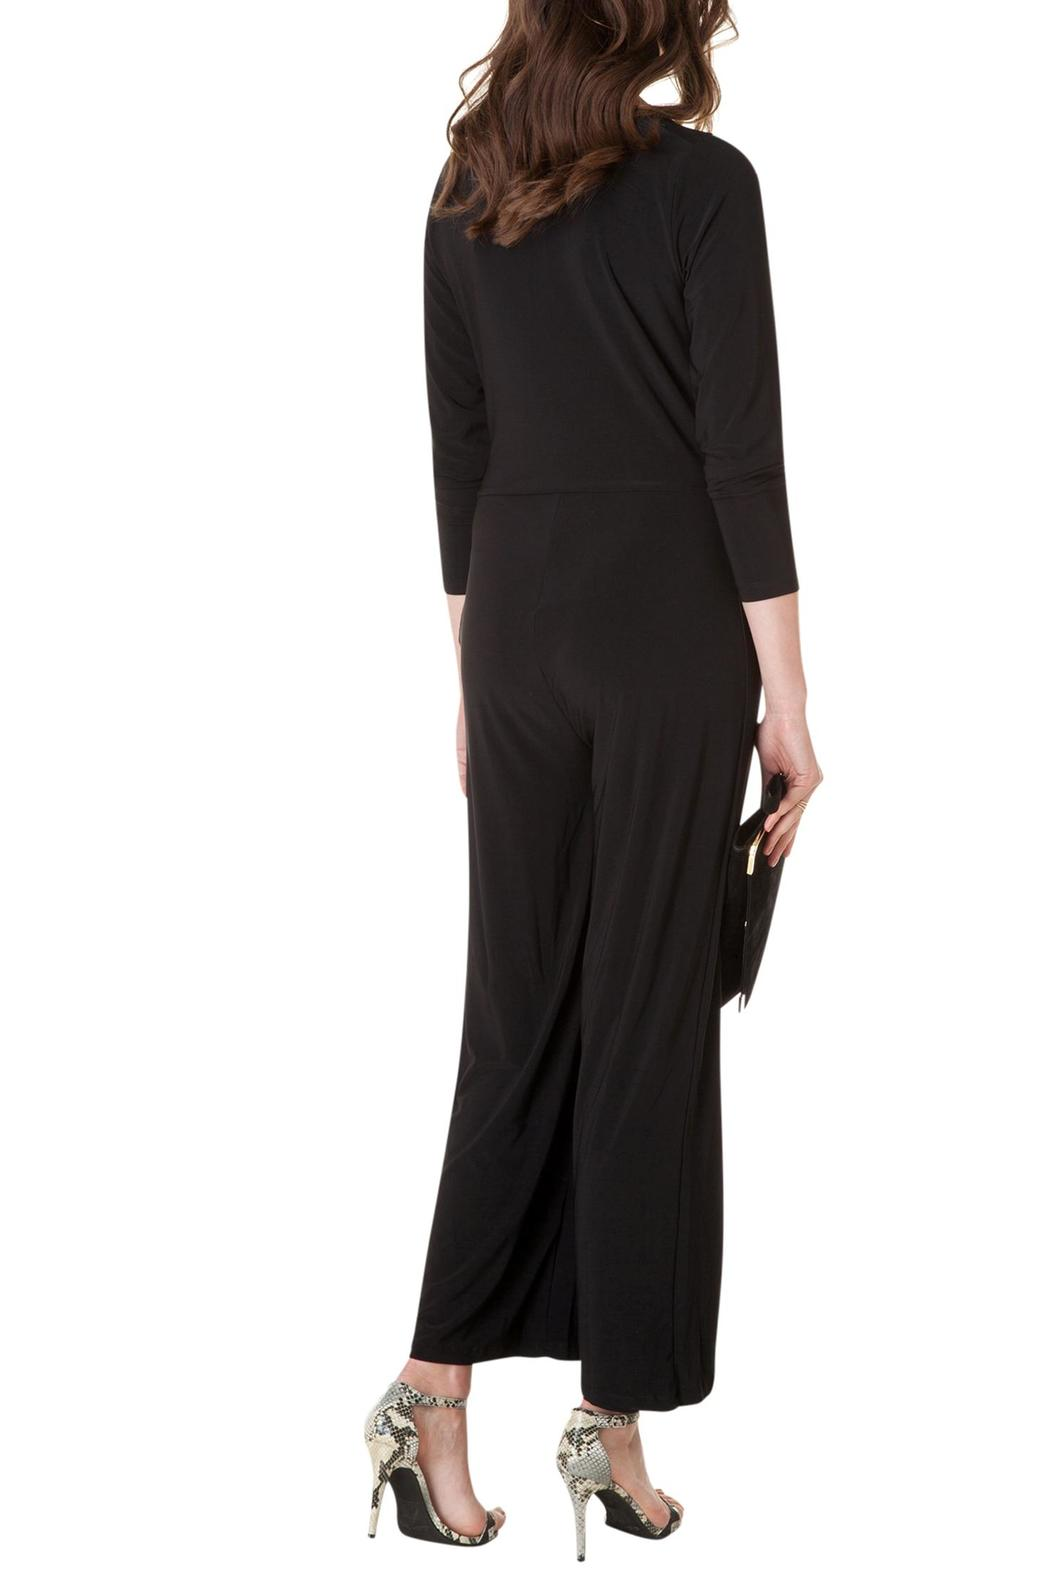 Colletta Glamour Girl Jumpsuit - Front Full Image